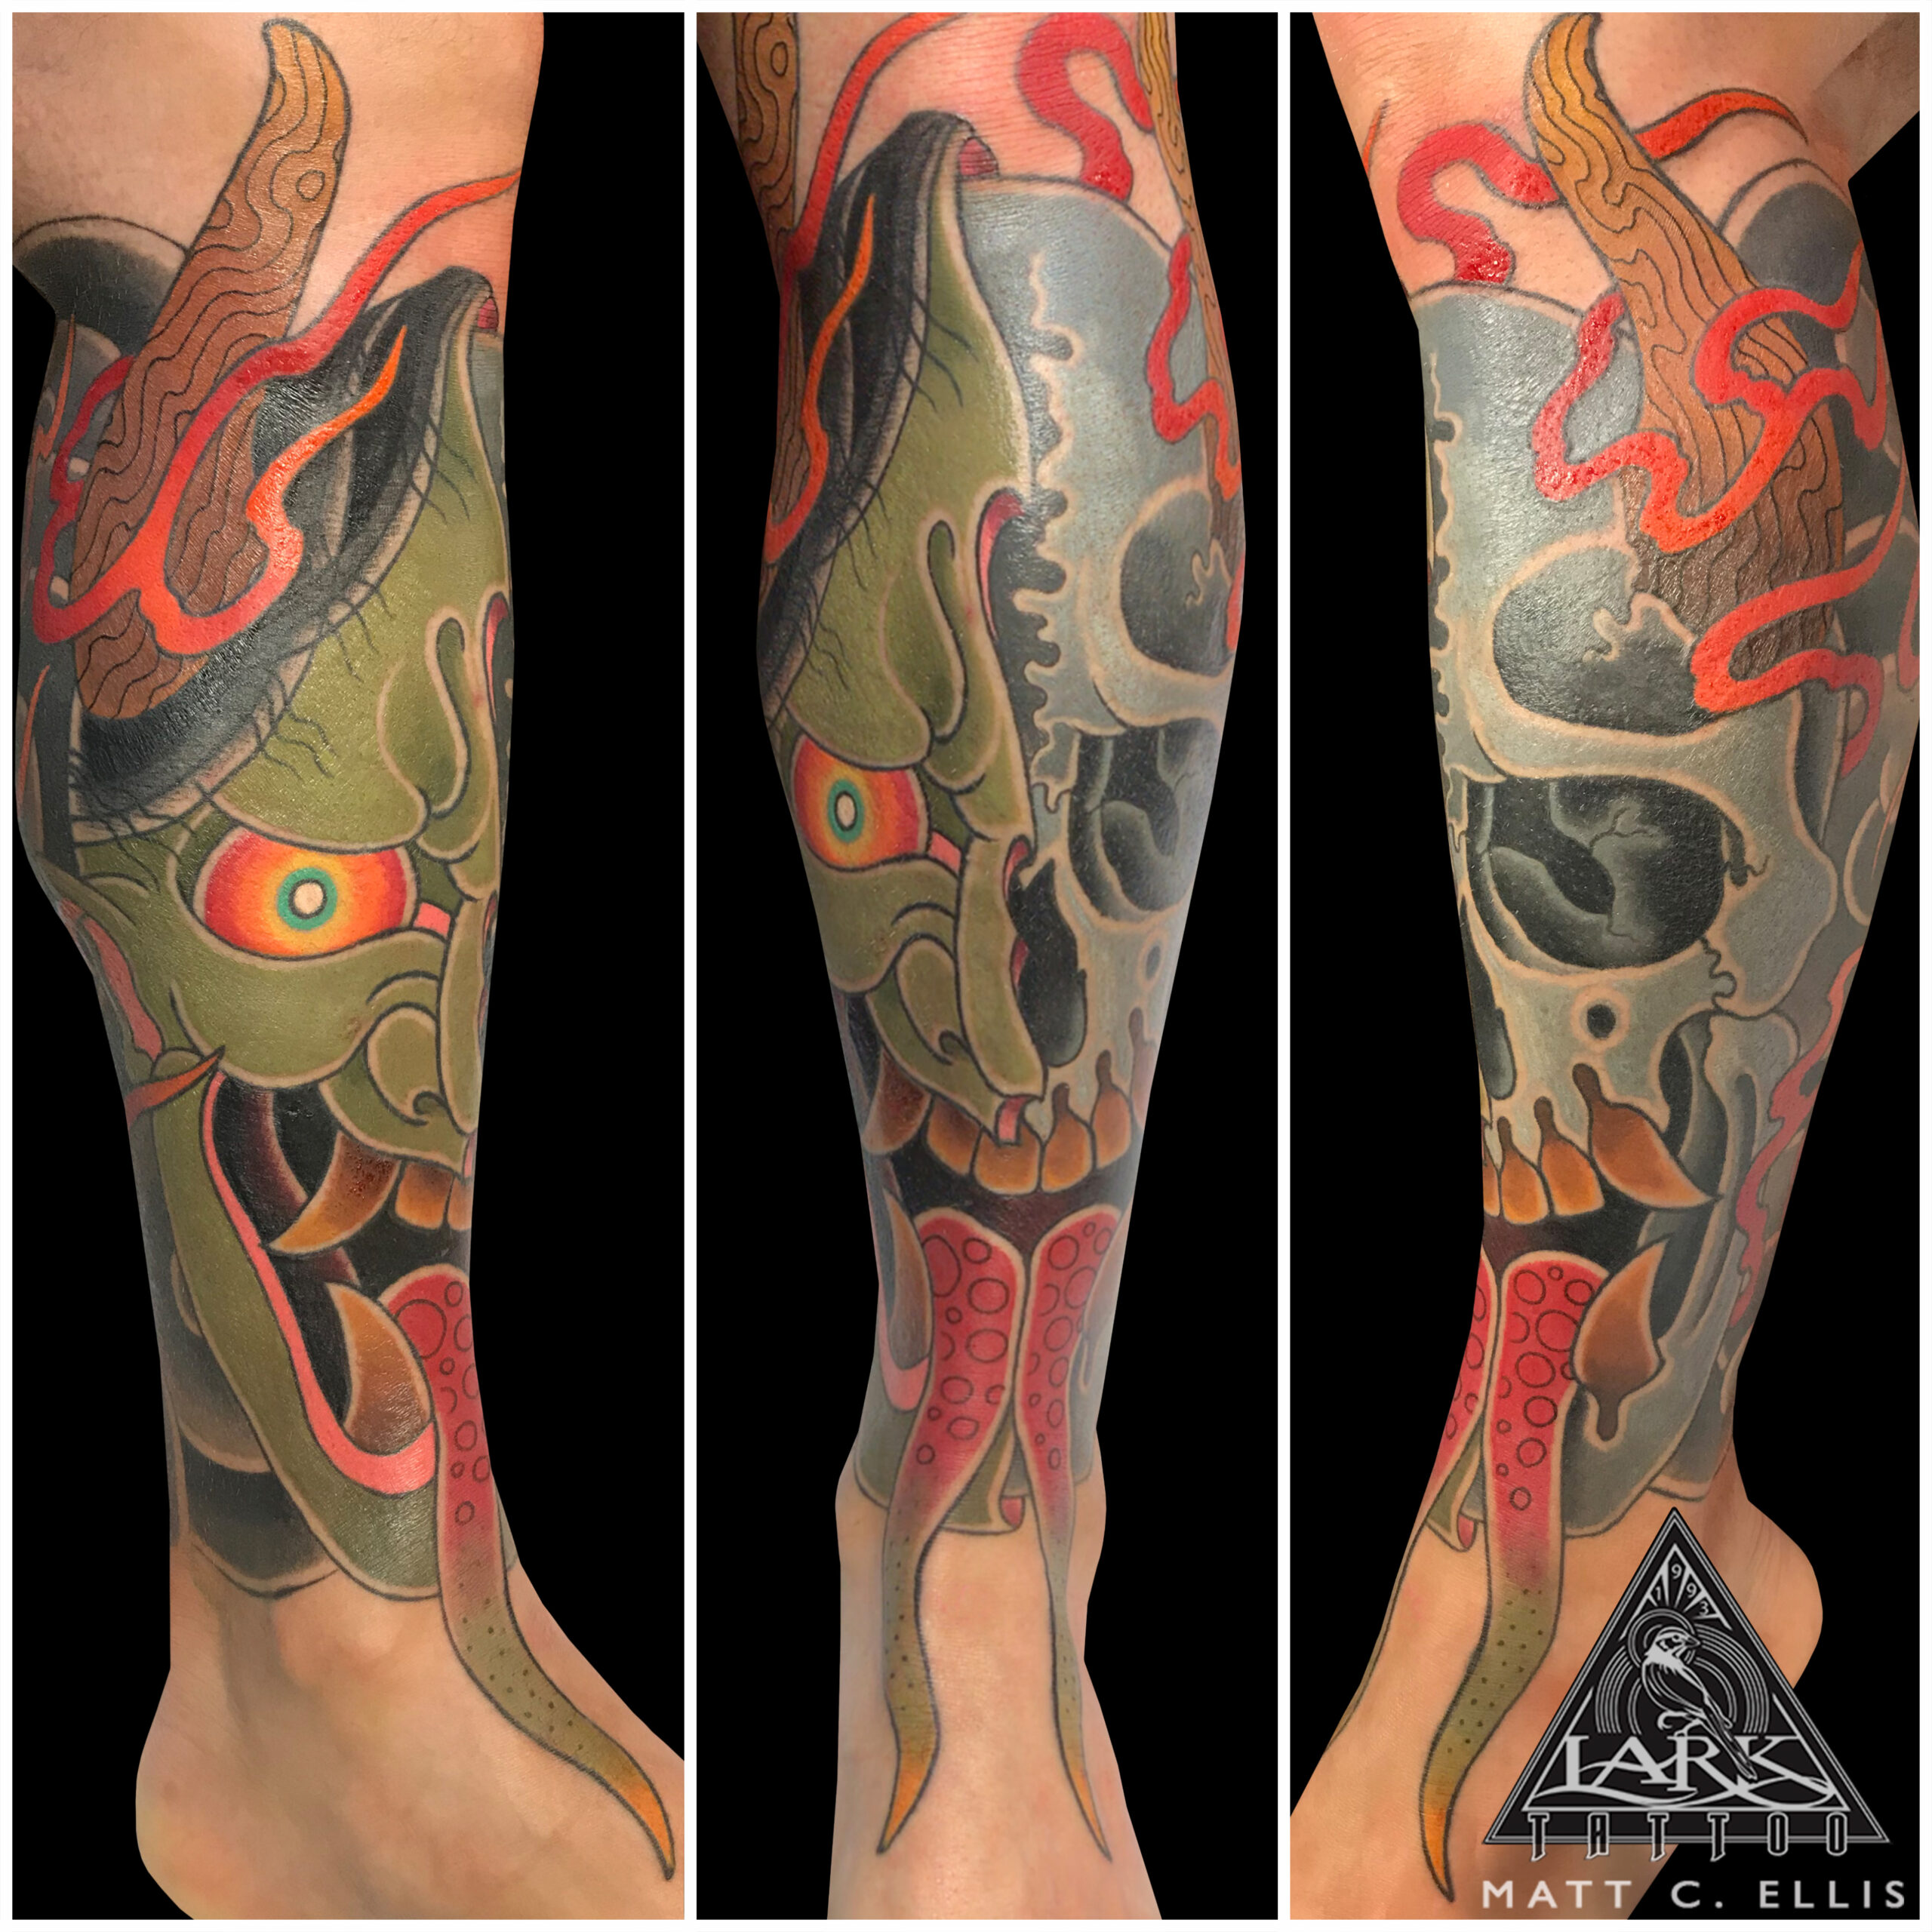 LarkTattoo, Tattoo, Tattoos, JapaneseTattoo, JapaneseArt, Oni, OniTattoo, JapaneseDemon, JapaneseDemonTattoo, JapaneseSkull, JapaneseSkullTattoo, ColorTattoo, JapaneseColorTattoo, JapaneseMask, JapaneseMaskTattoo, Leg, LegTattoo, FireTattoo, TattooArtist, Tattoist, Tattooer, LongIslandTattooArtist, LongIslandTattooer, LongIslandTattoo, TattooOfTheDay, Tat, Tats, Tatts, Tatted, Inked, Ink, TattooInk, AmazingInk, AmazingTattoo, BodyArt, LarkTattooWestbury, Westbury, LongIsland, NY, NewYork, USA, Art, Tattedup, InkedUp, LarkTattoos